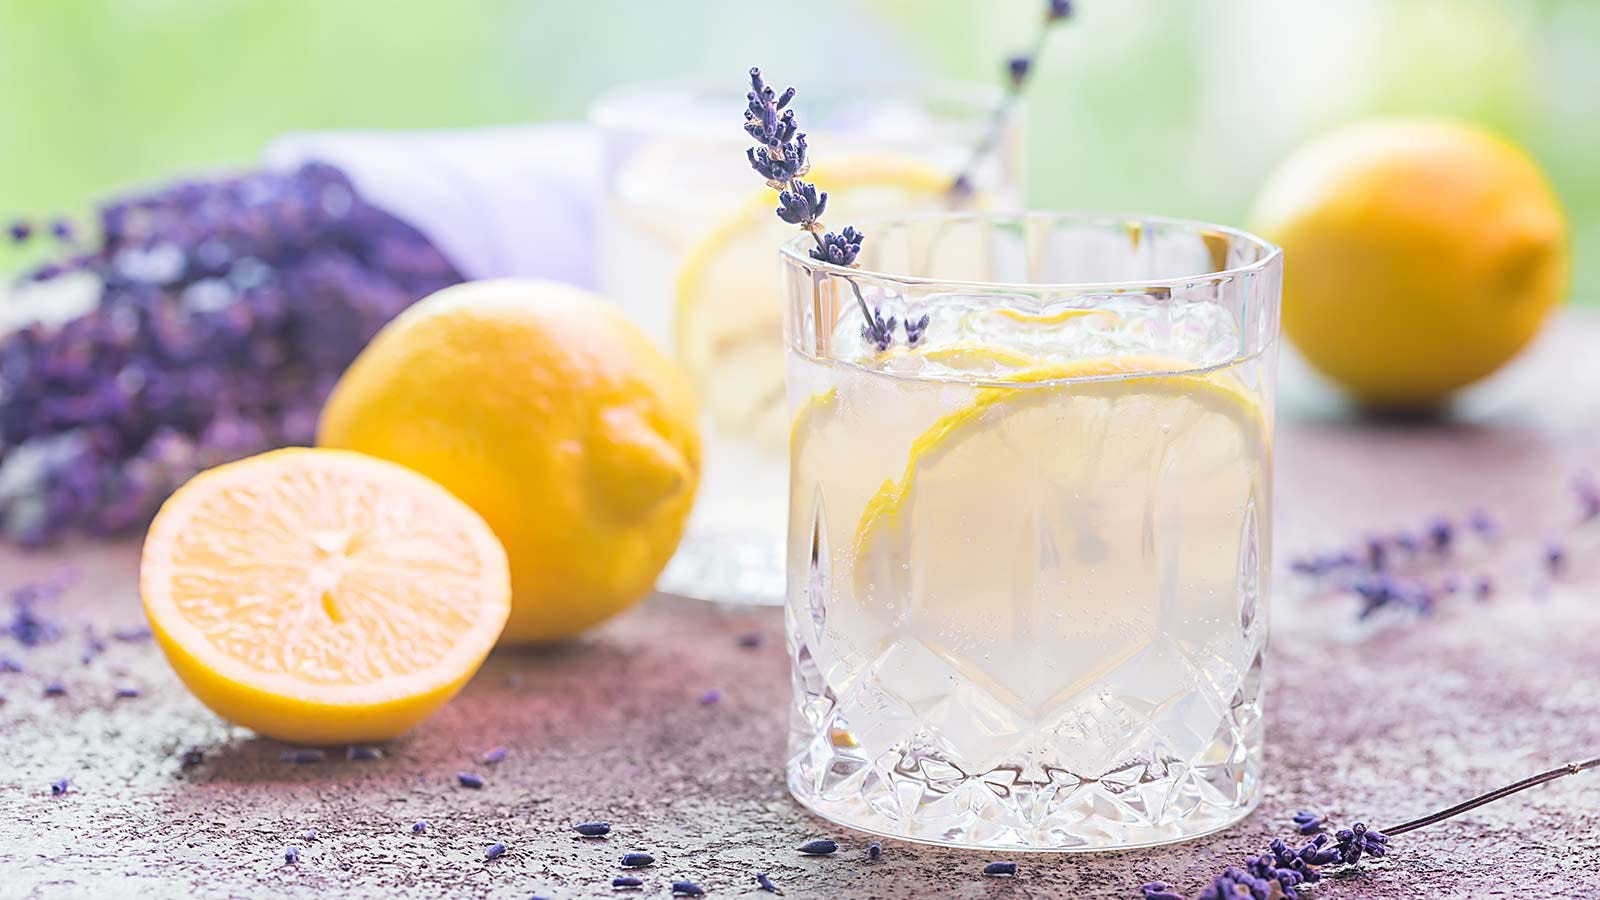 A glass of lavender-infused lemonade, surrounded by lemons and sprigs of lavender.